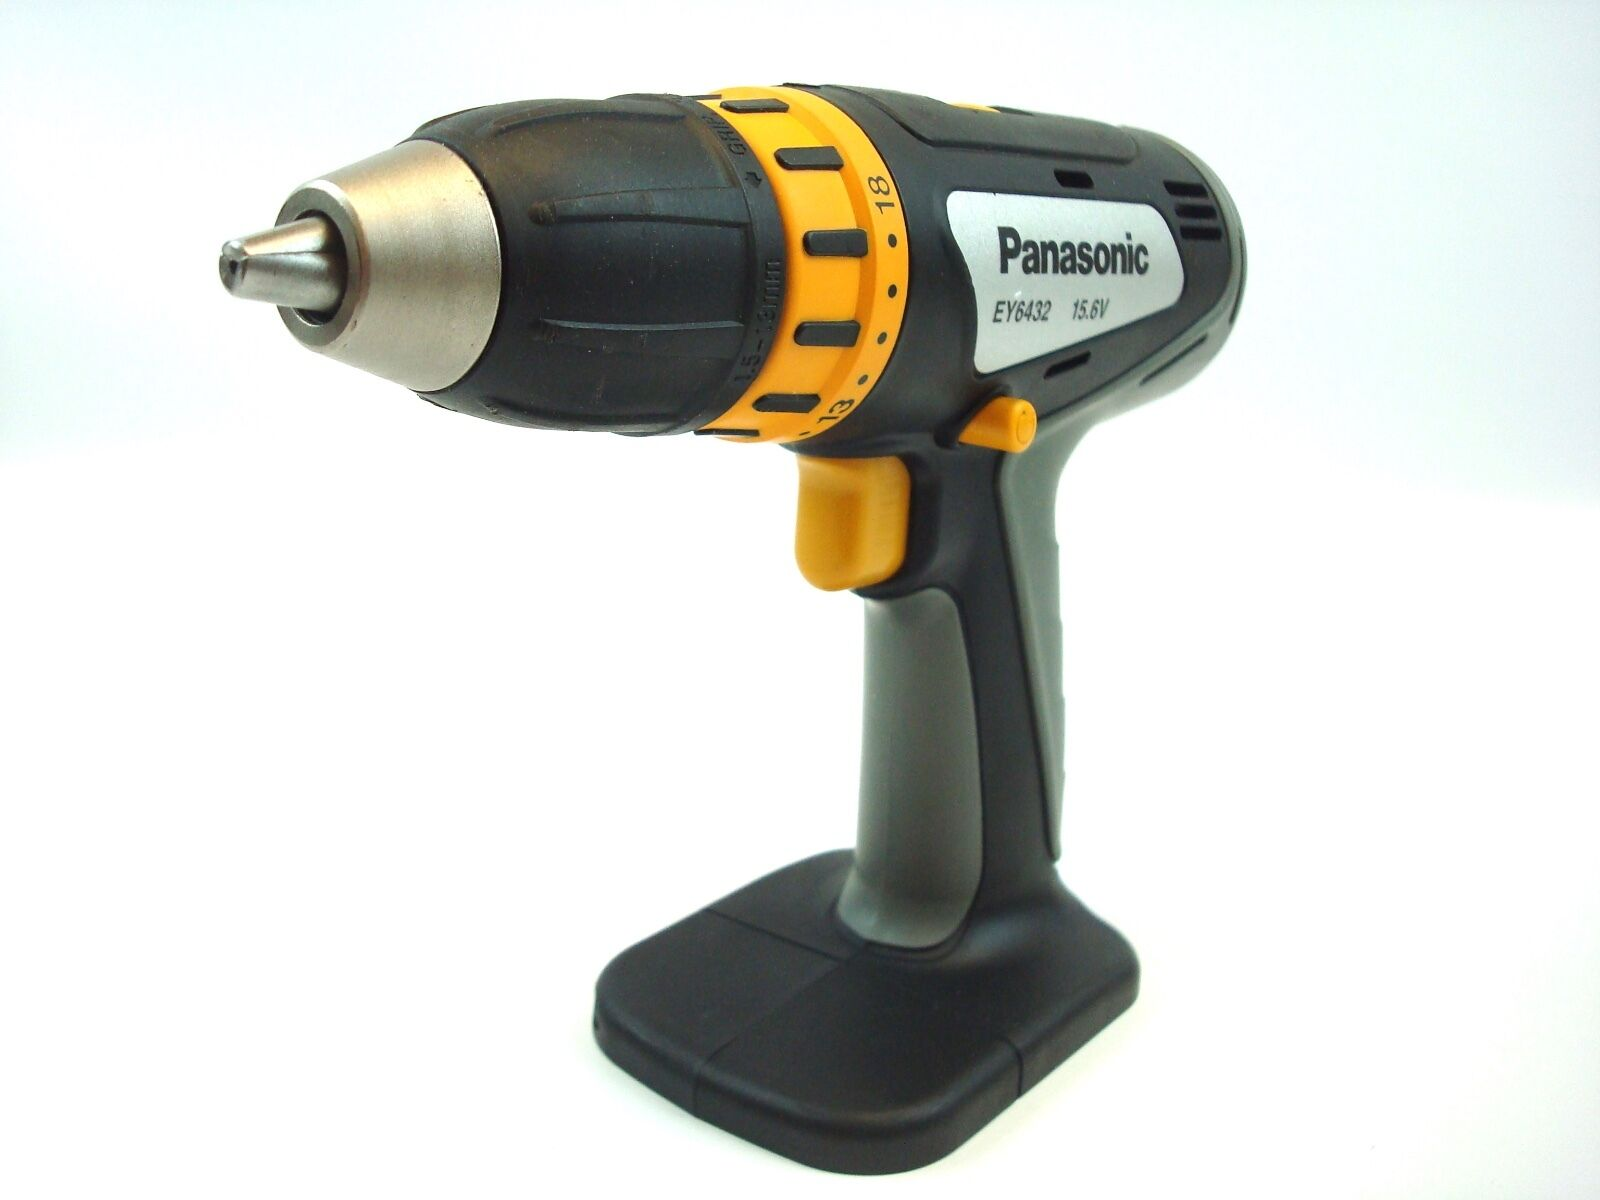 Panasonic New Genuine OEM EY6432 Cordless 15.6V 15.6 Volt 1/2